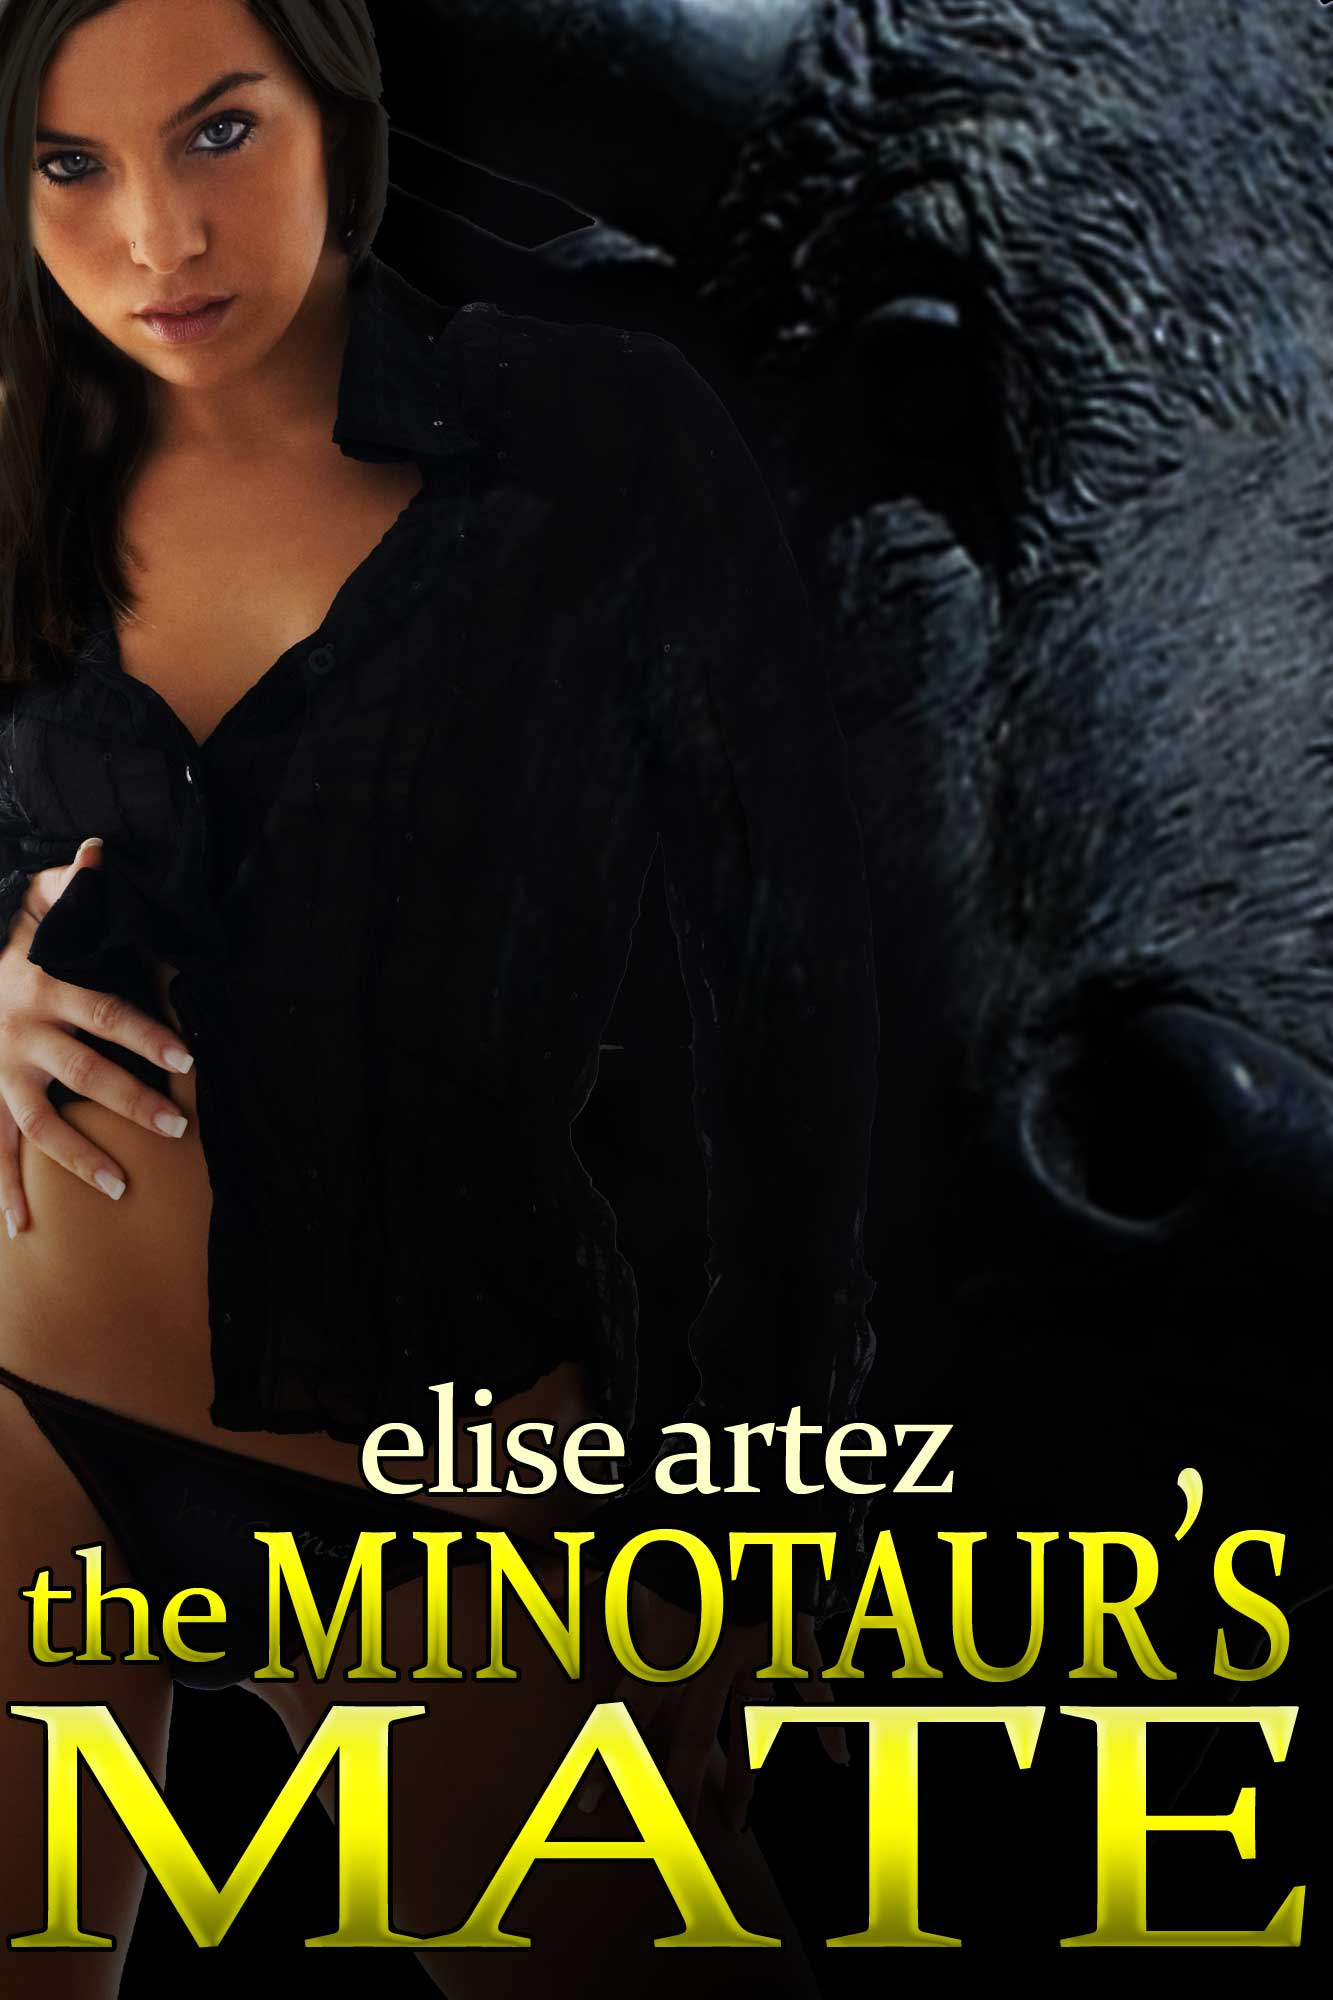 The Minotaur's Mate